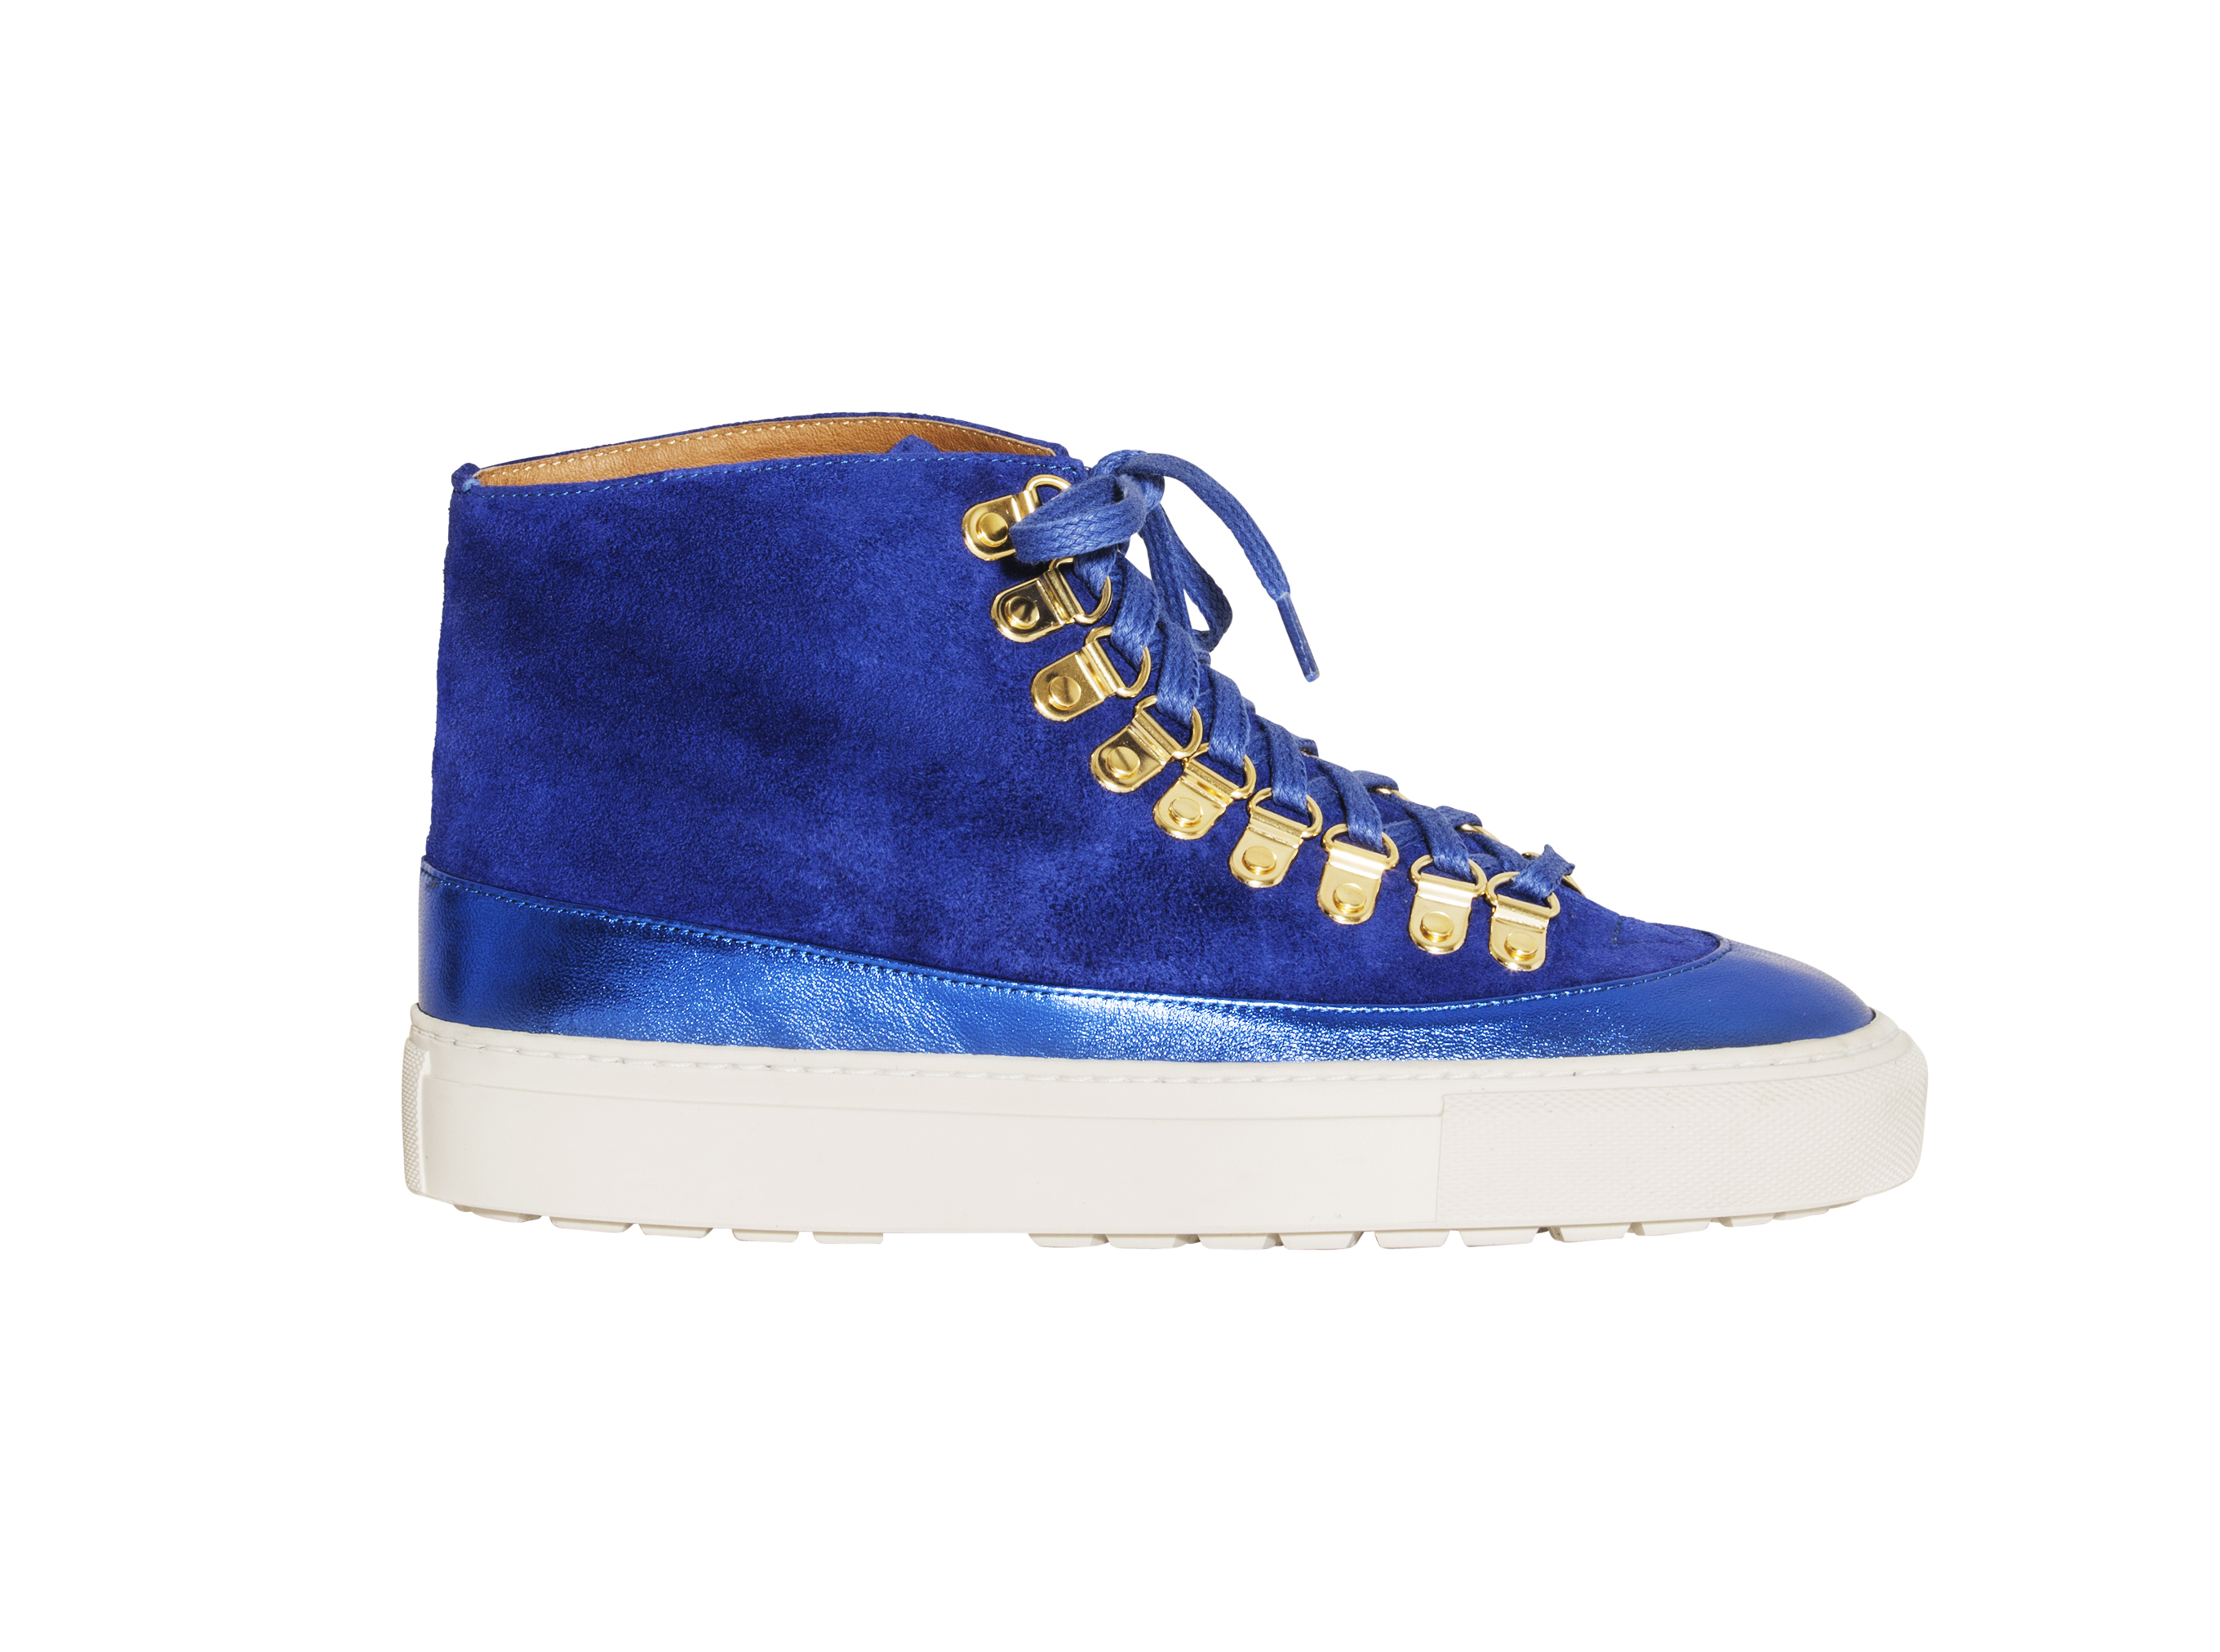 Rodebjer's suede and metallic leather Harrison sneaker.